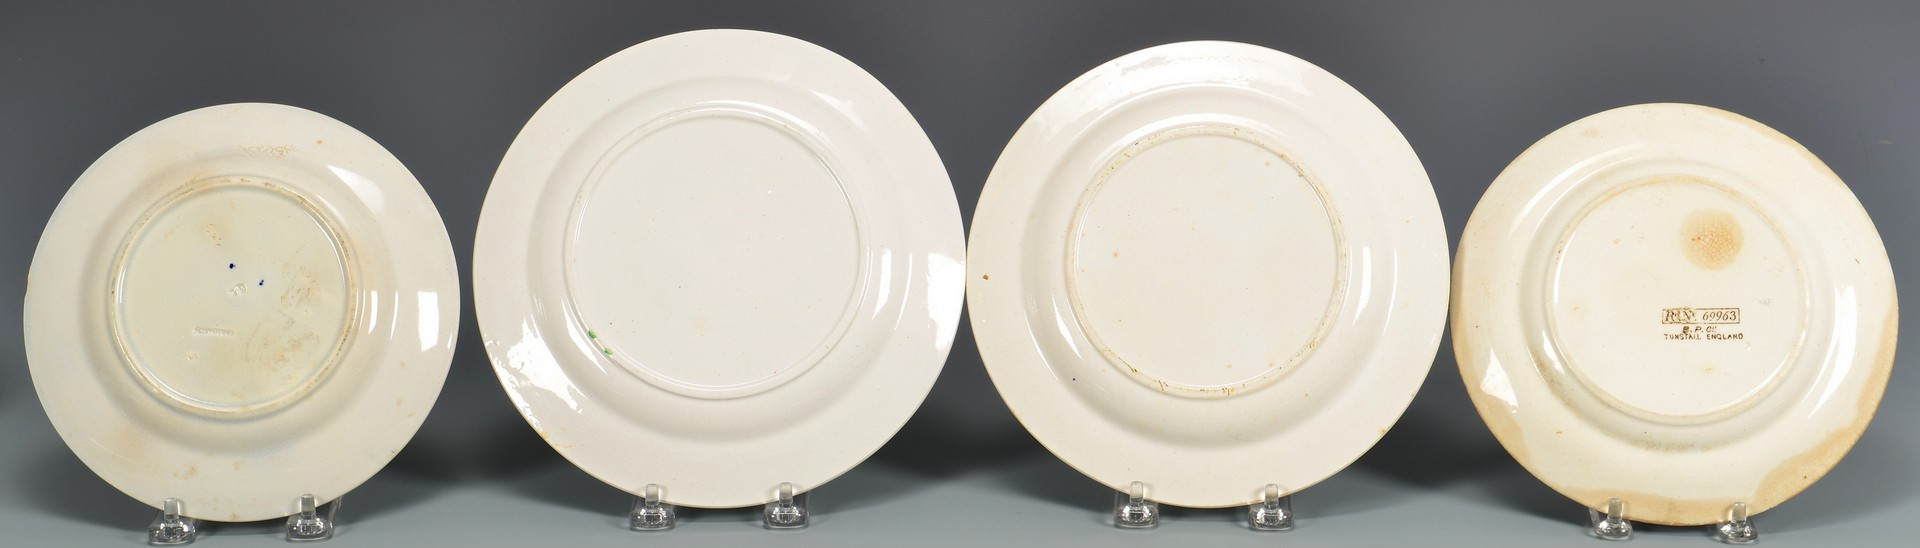 Lot 608: Group of 23 English ABC Pottery Plates